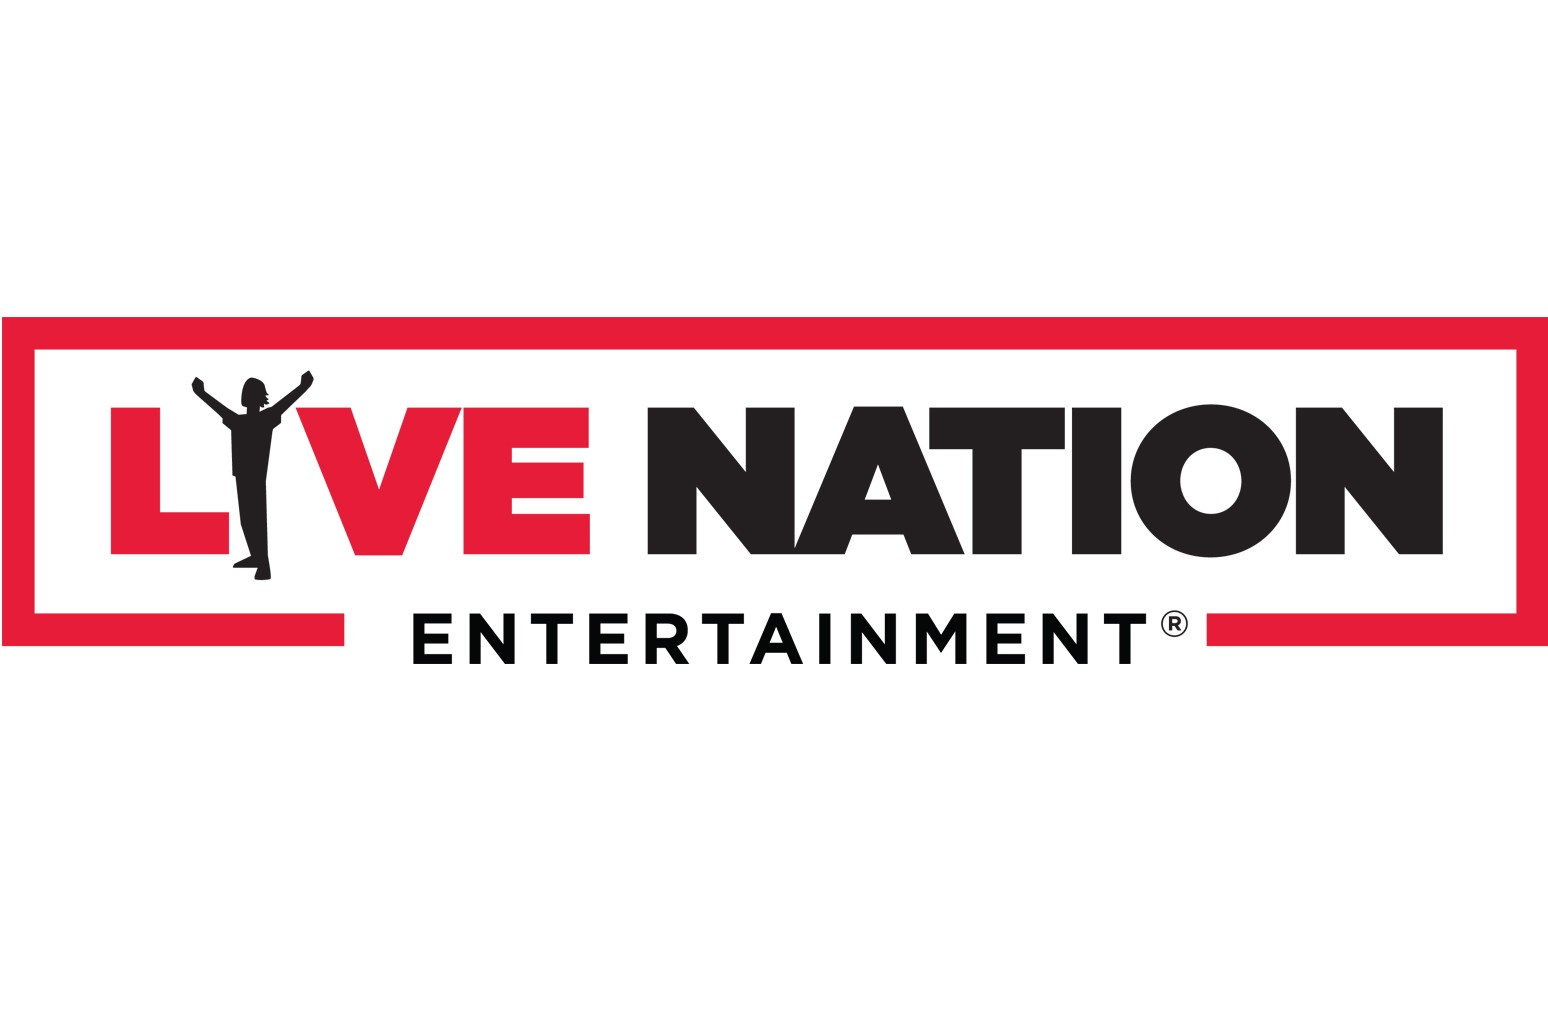 Live Nation Launches $10M Fund to Support Concert Crews Affected by Coronavirus